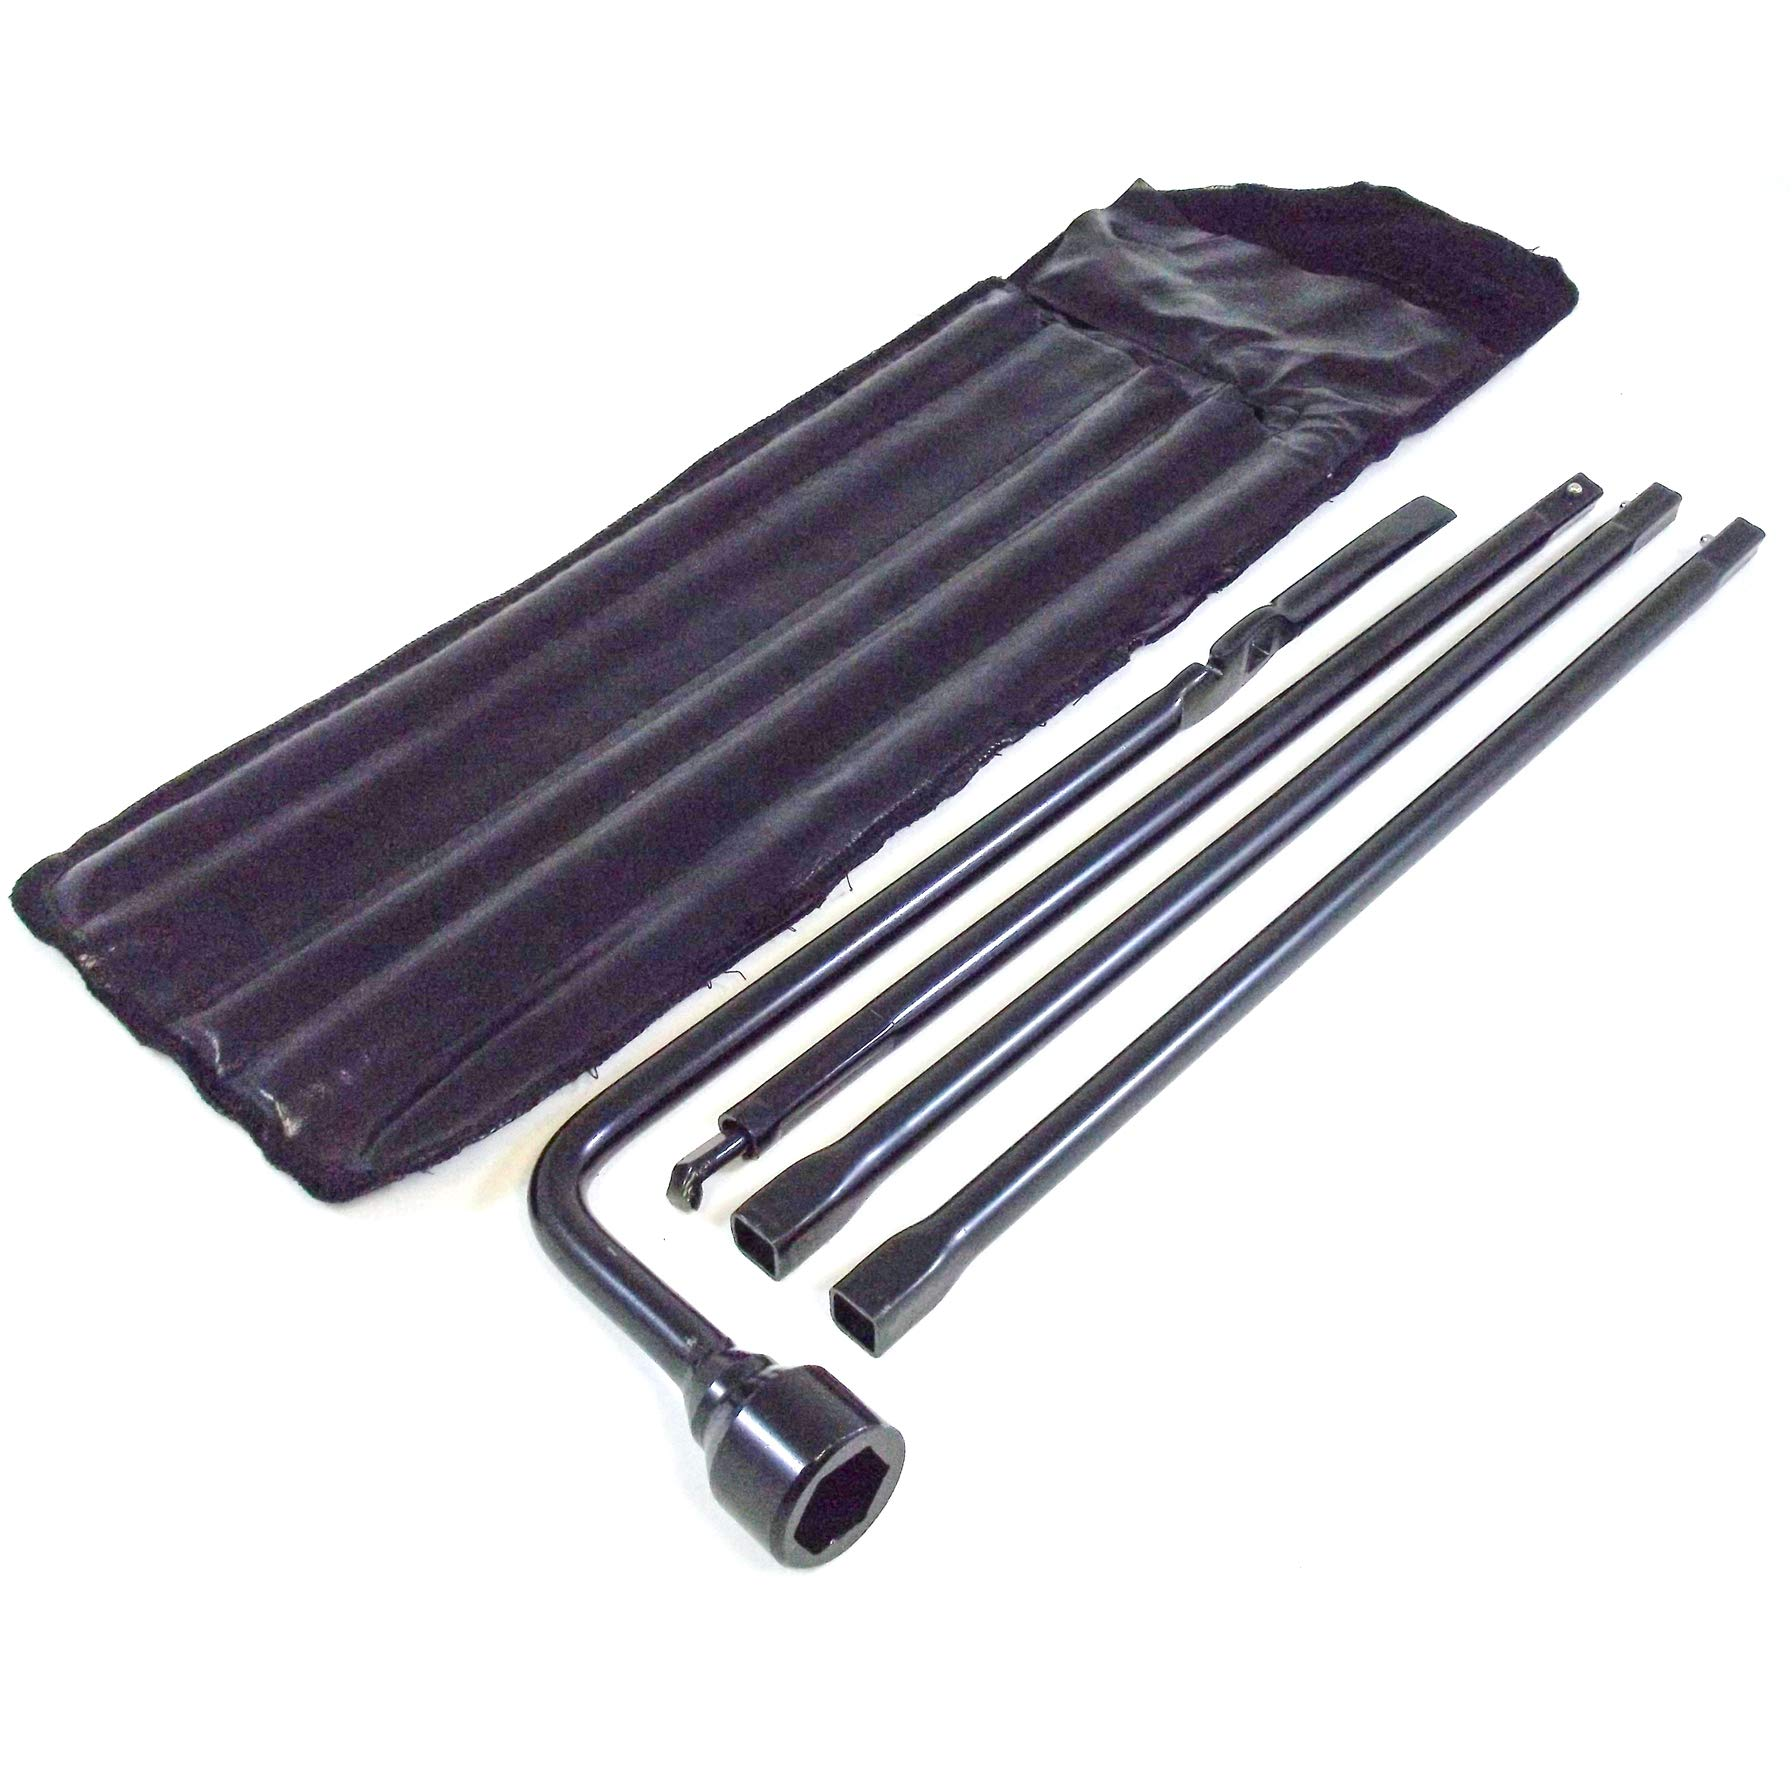 Spare Tire Tool Kit with Case for 1999-2018 Compatible with Chevy Silverado 1500 & GMC Sierra 1500 Tire Iron Lug Wrench, 4 Piece Tool Kit to Lower Spare Tire (1999-2019 2500 HD and 3500 HD)